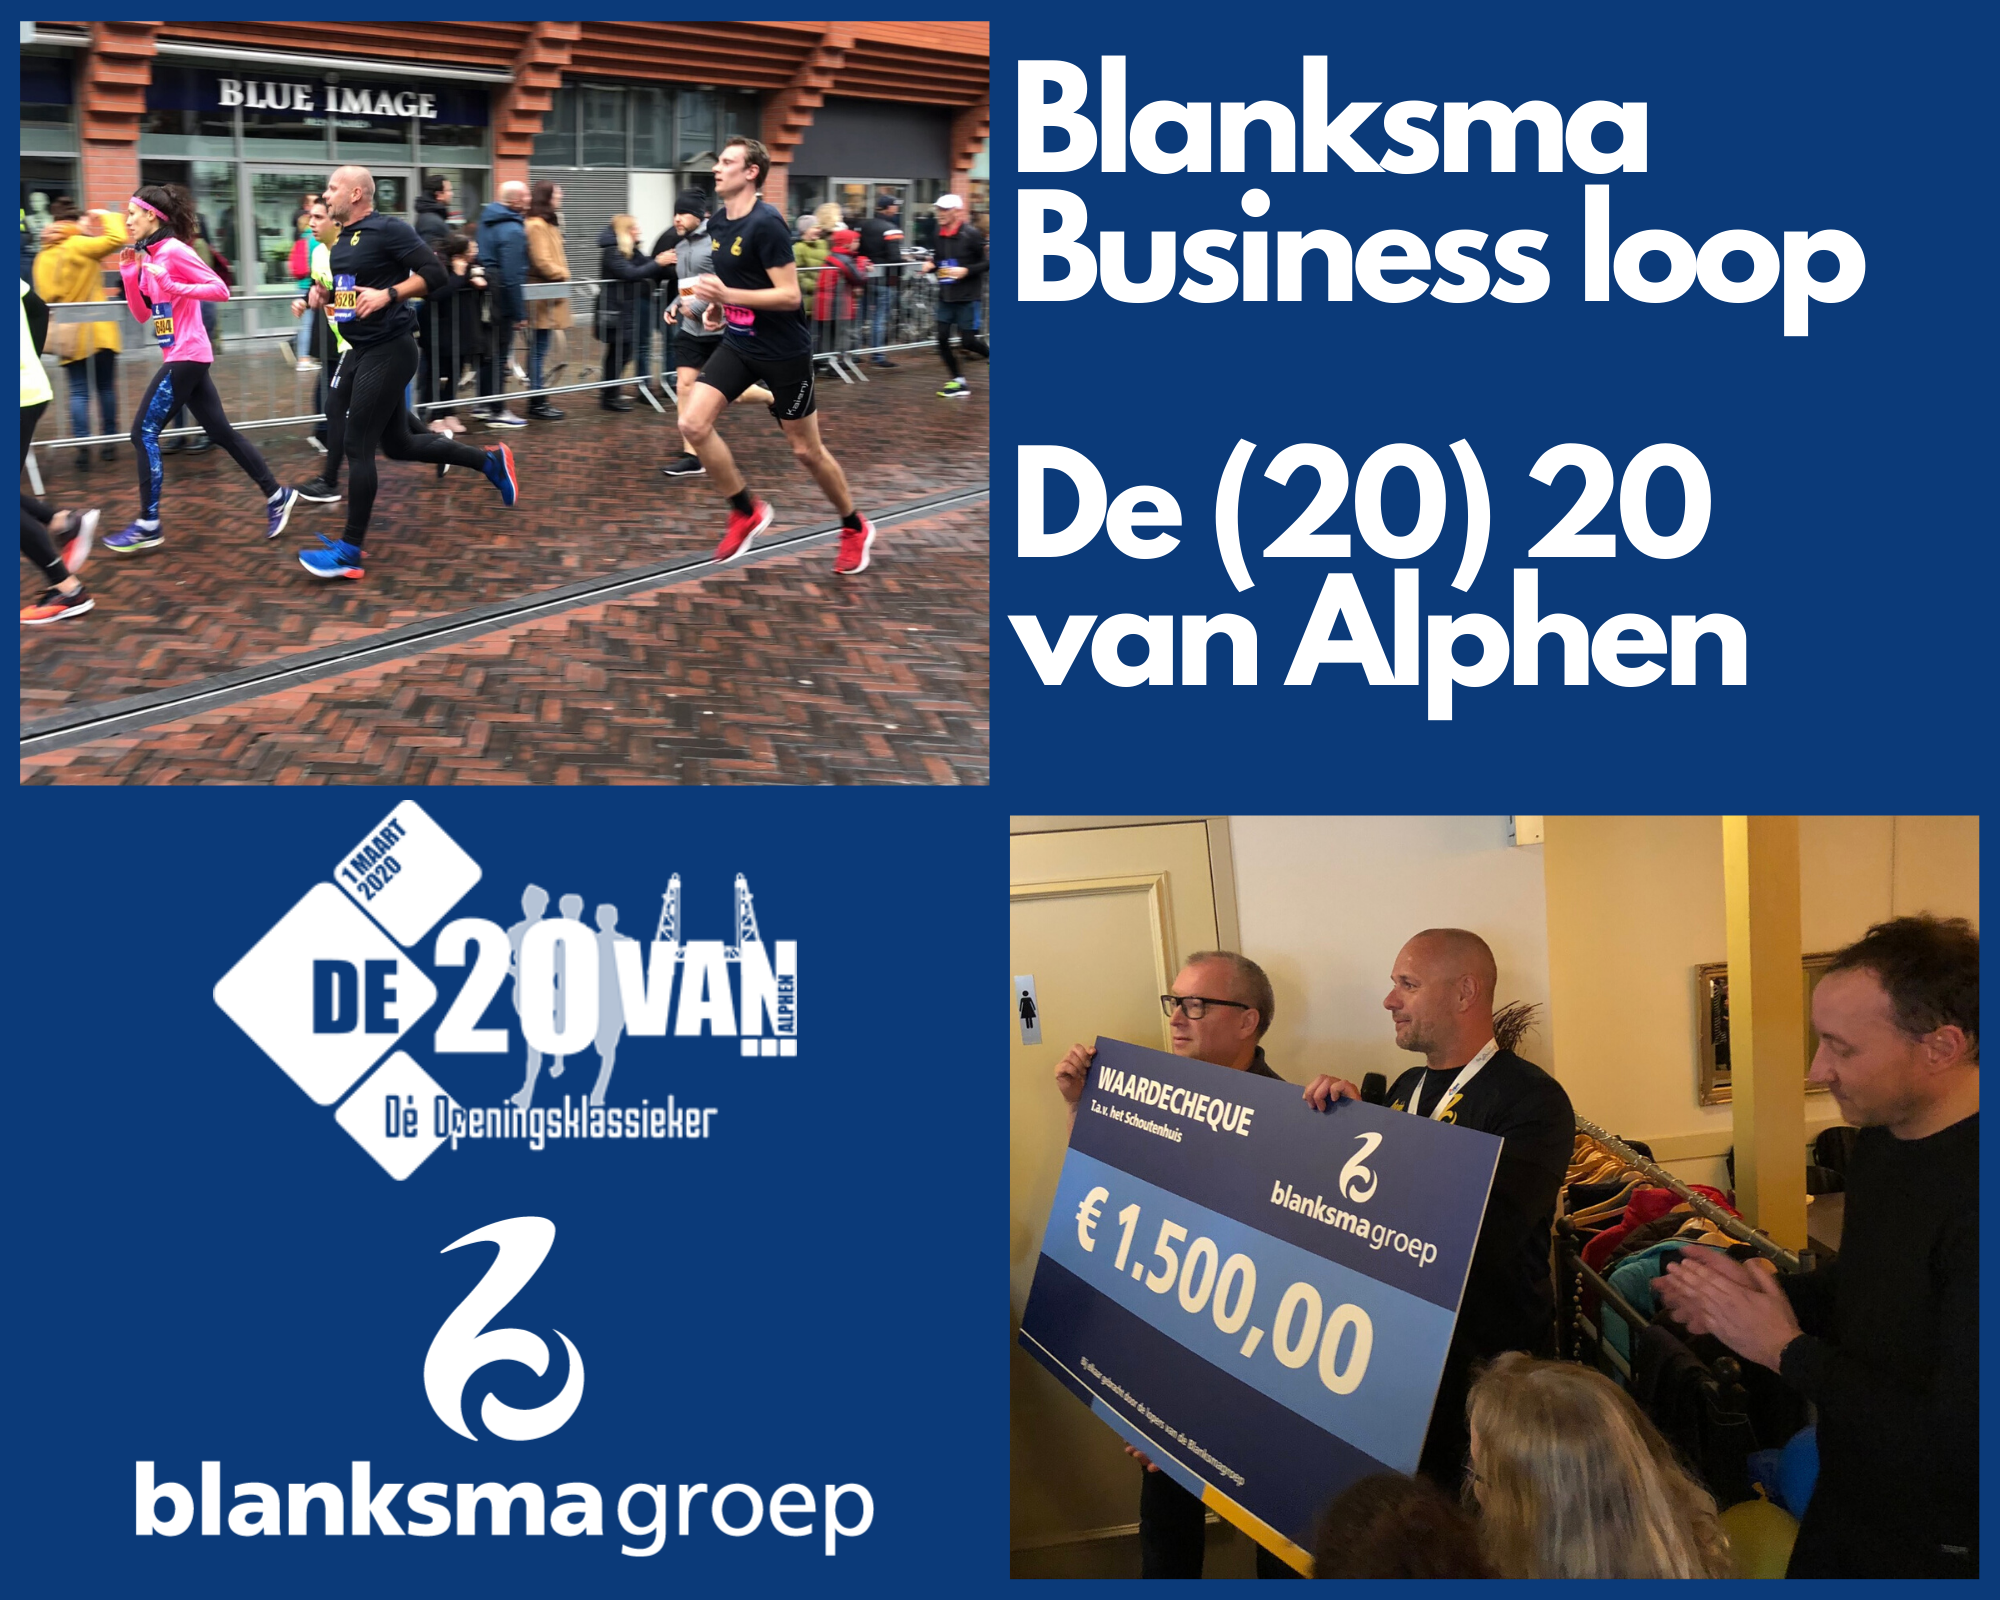 Blanksma Business Loop (20)20 Van Alphen